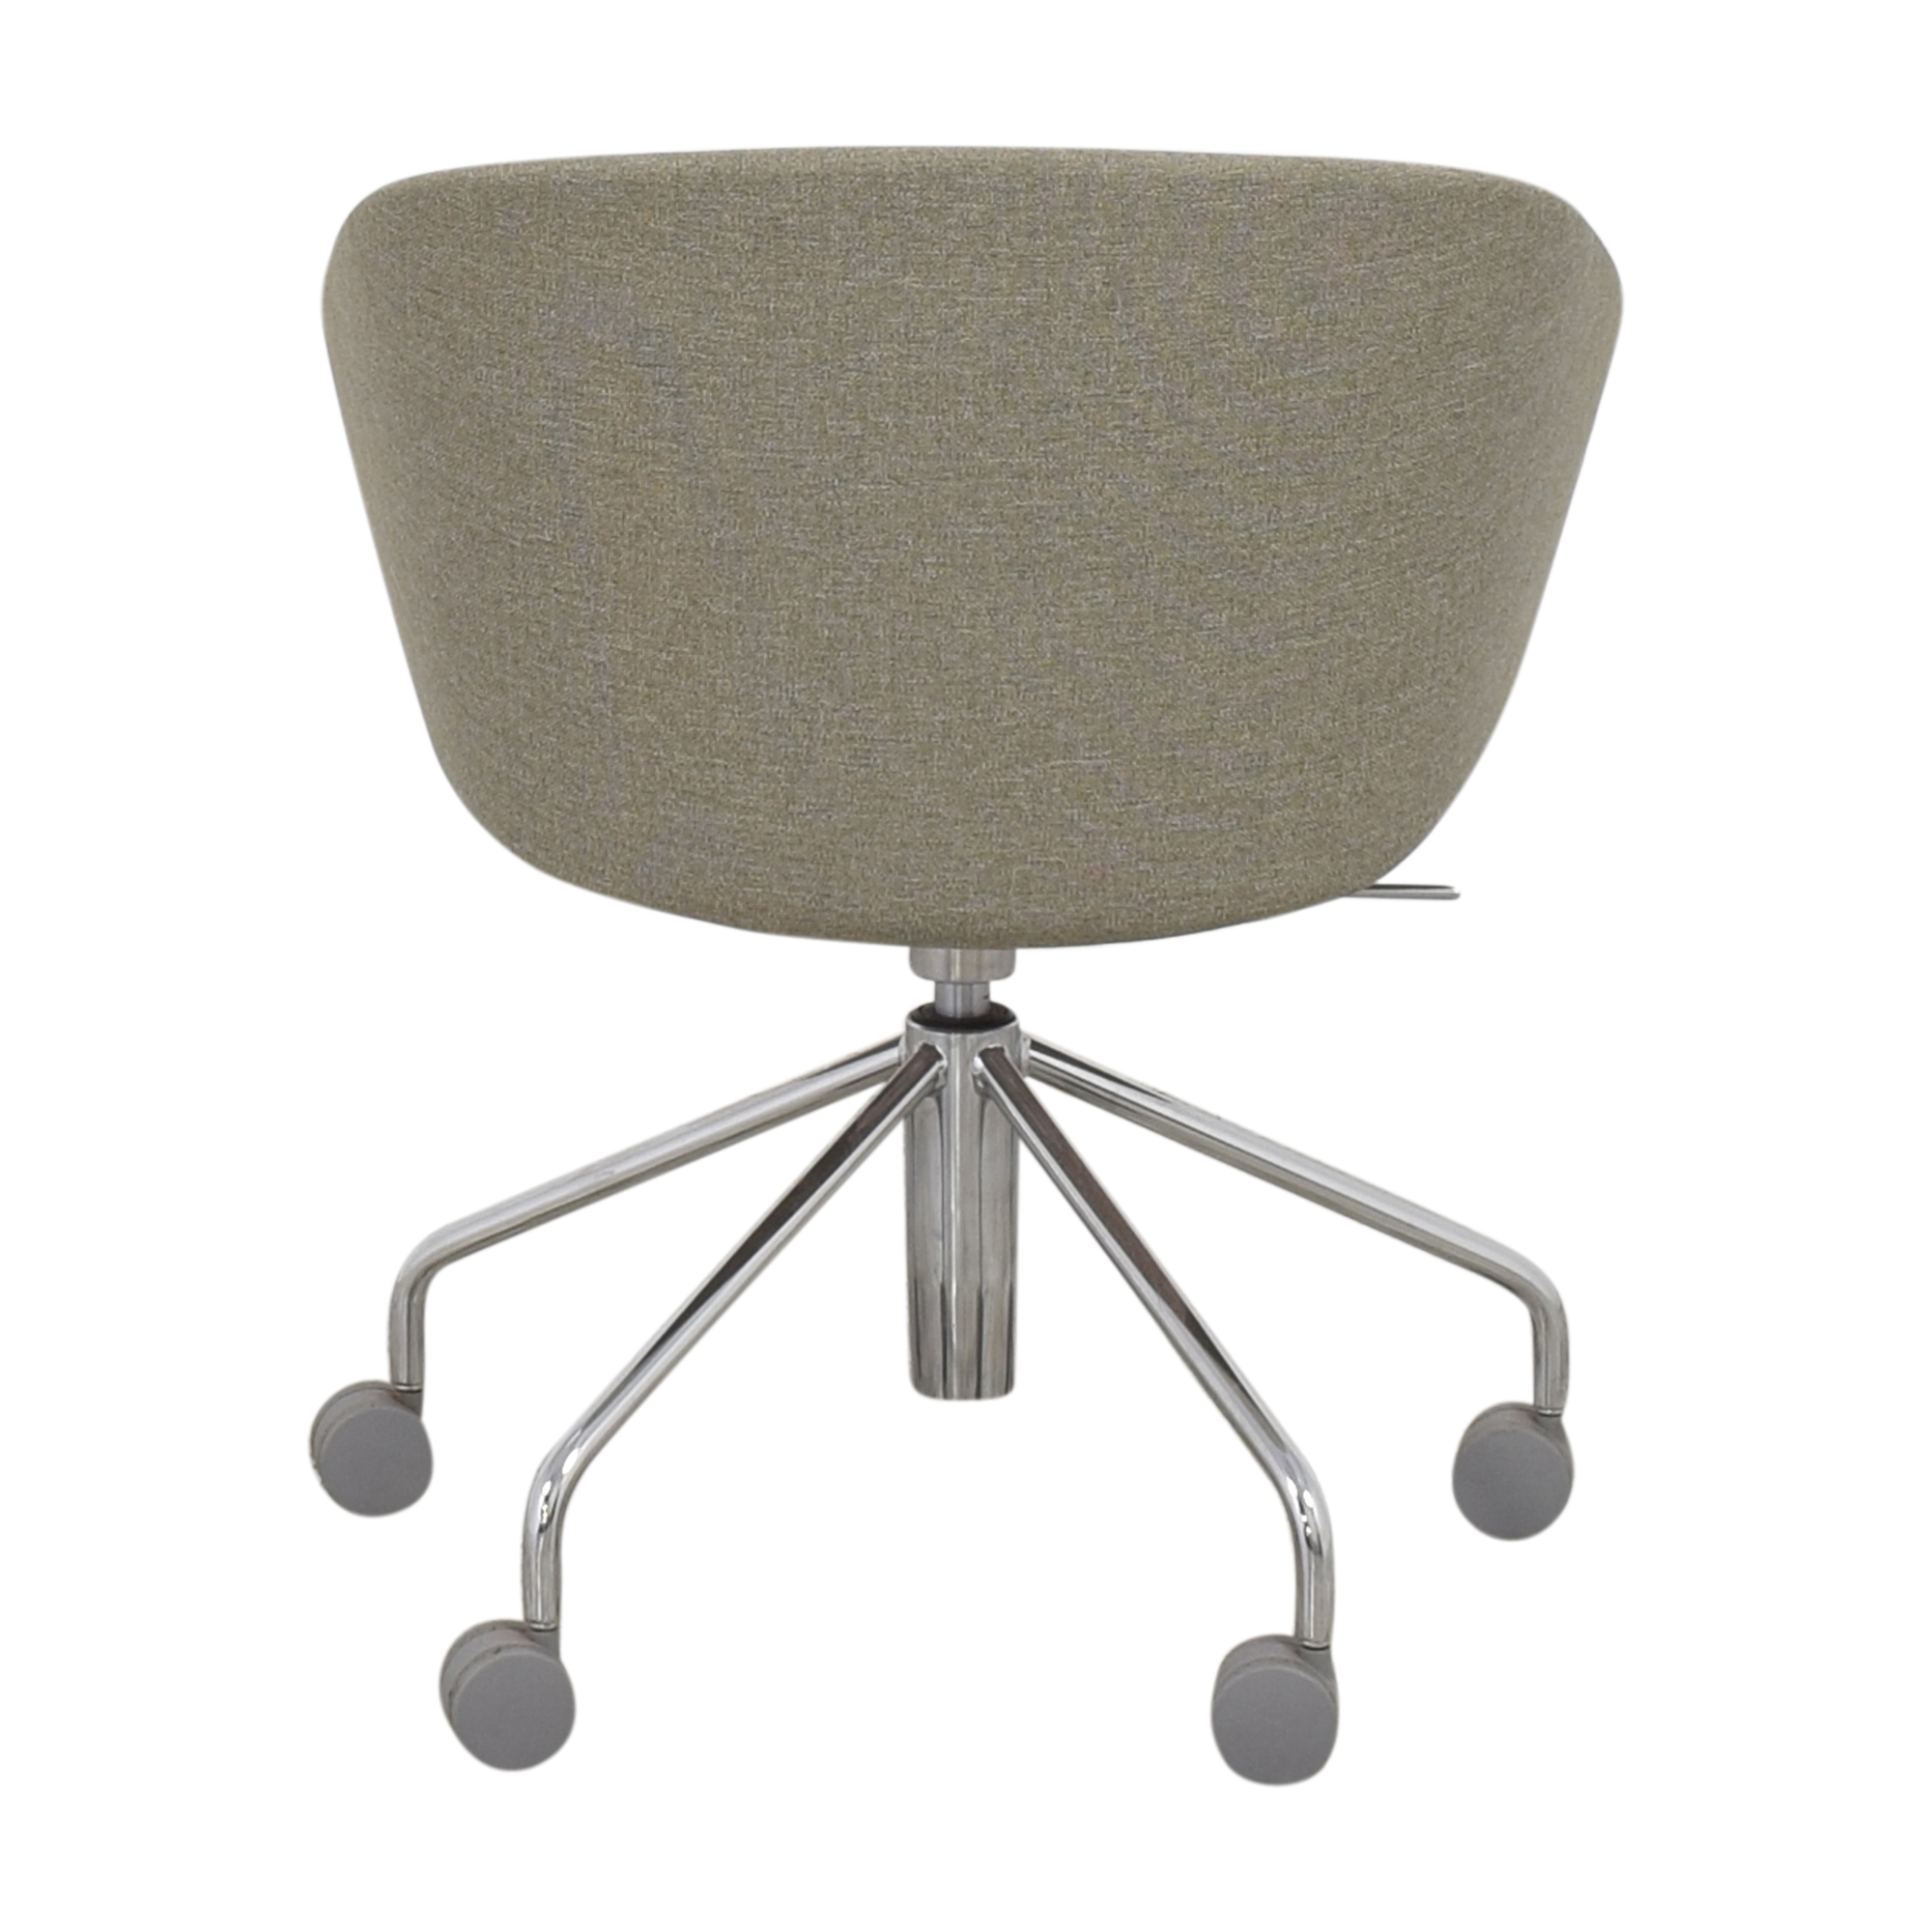 shop Poppin Poppin Pitch Meeting Chair online